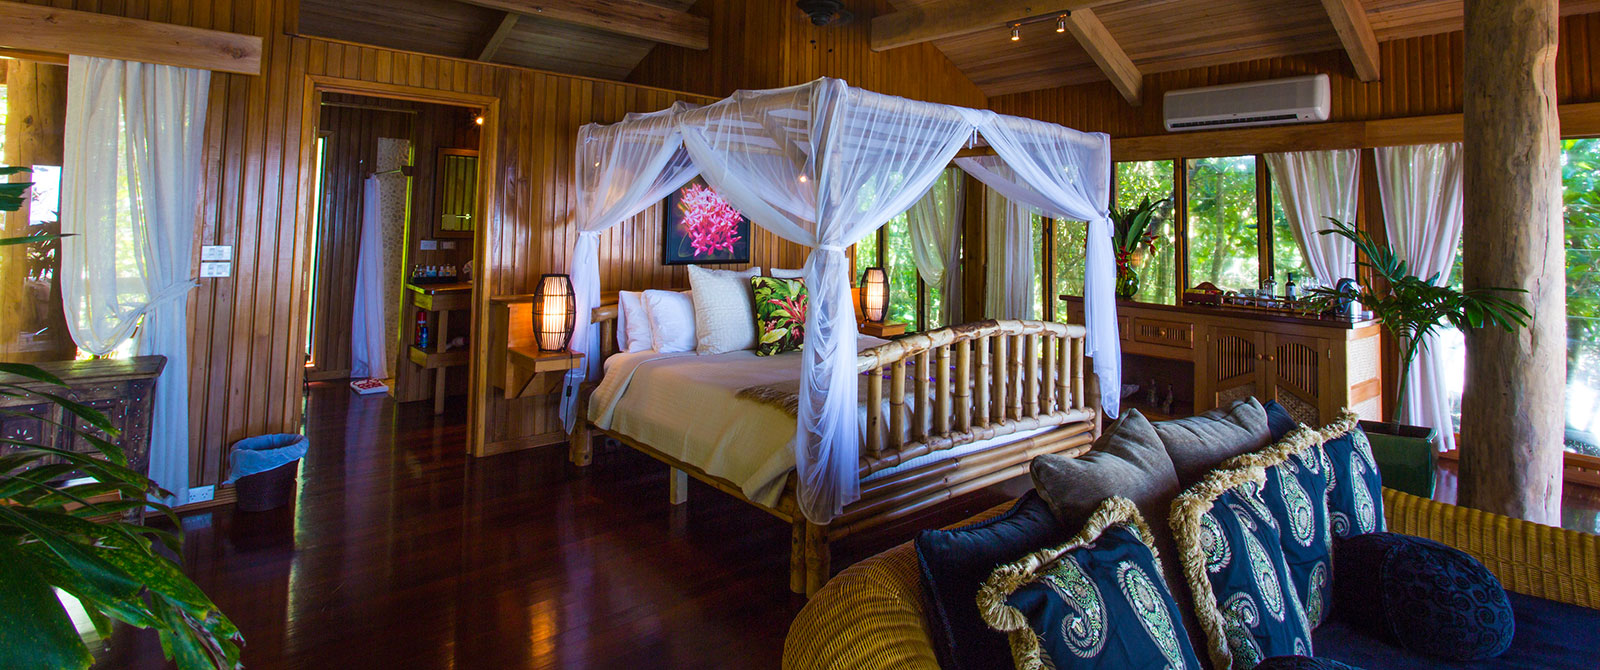 Ocean Tropical Bure at Namale Resort & Spa Fiji - Active Nature Retreat Package